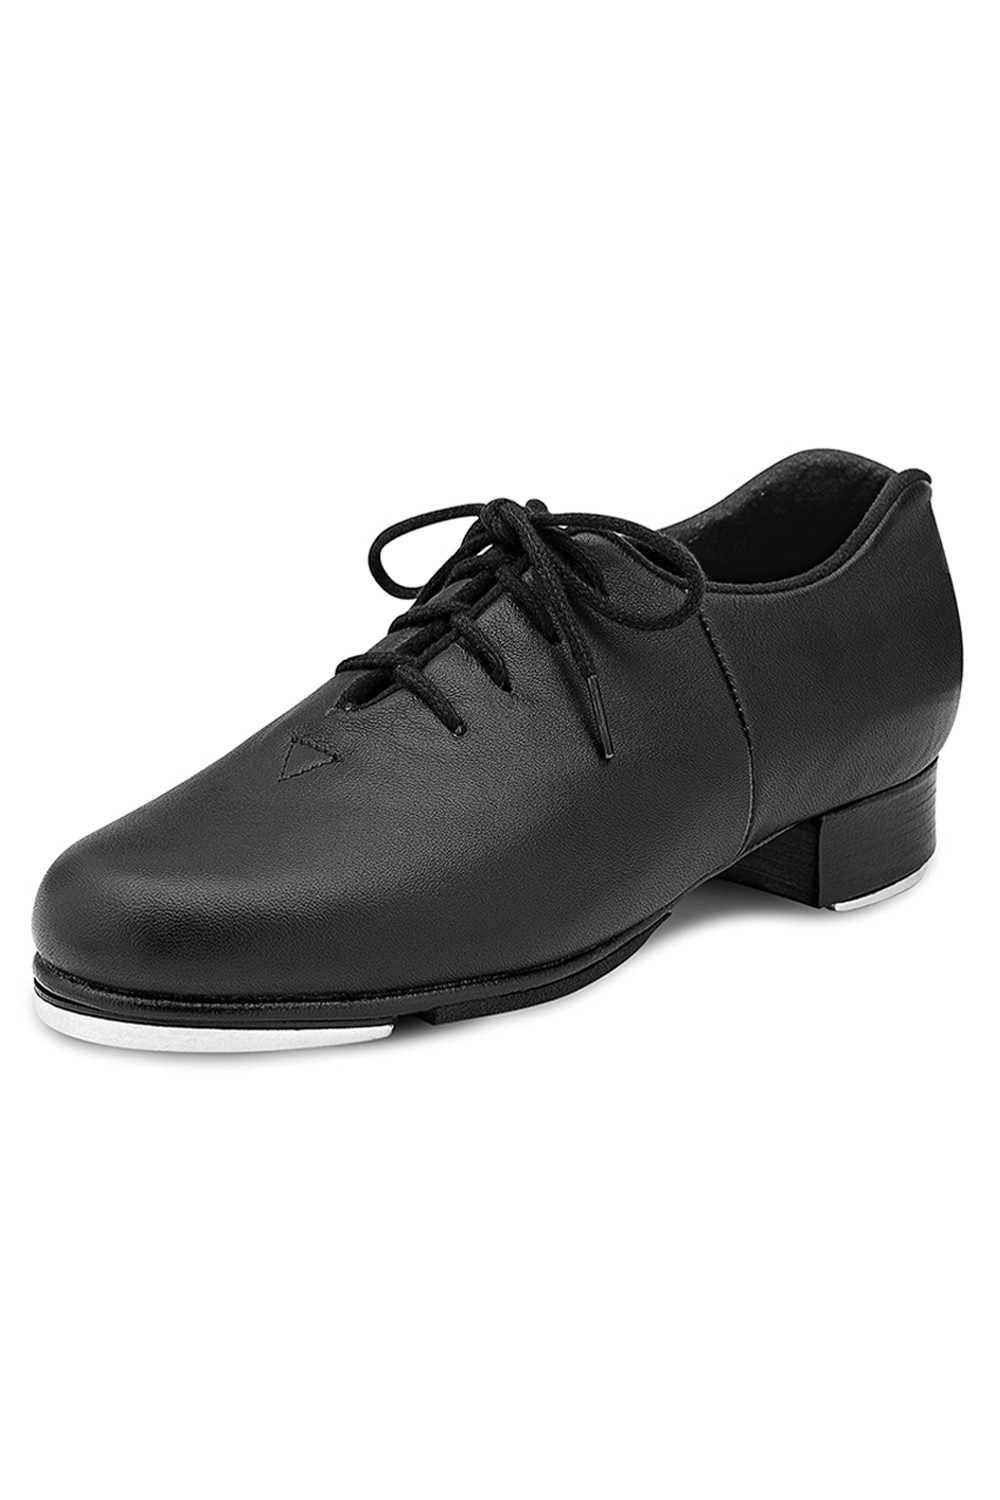 Zapato De Claqué Audeo Jazz Women's Tap Shoes